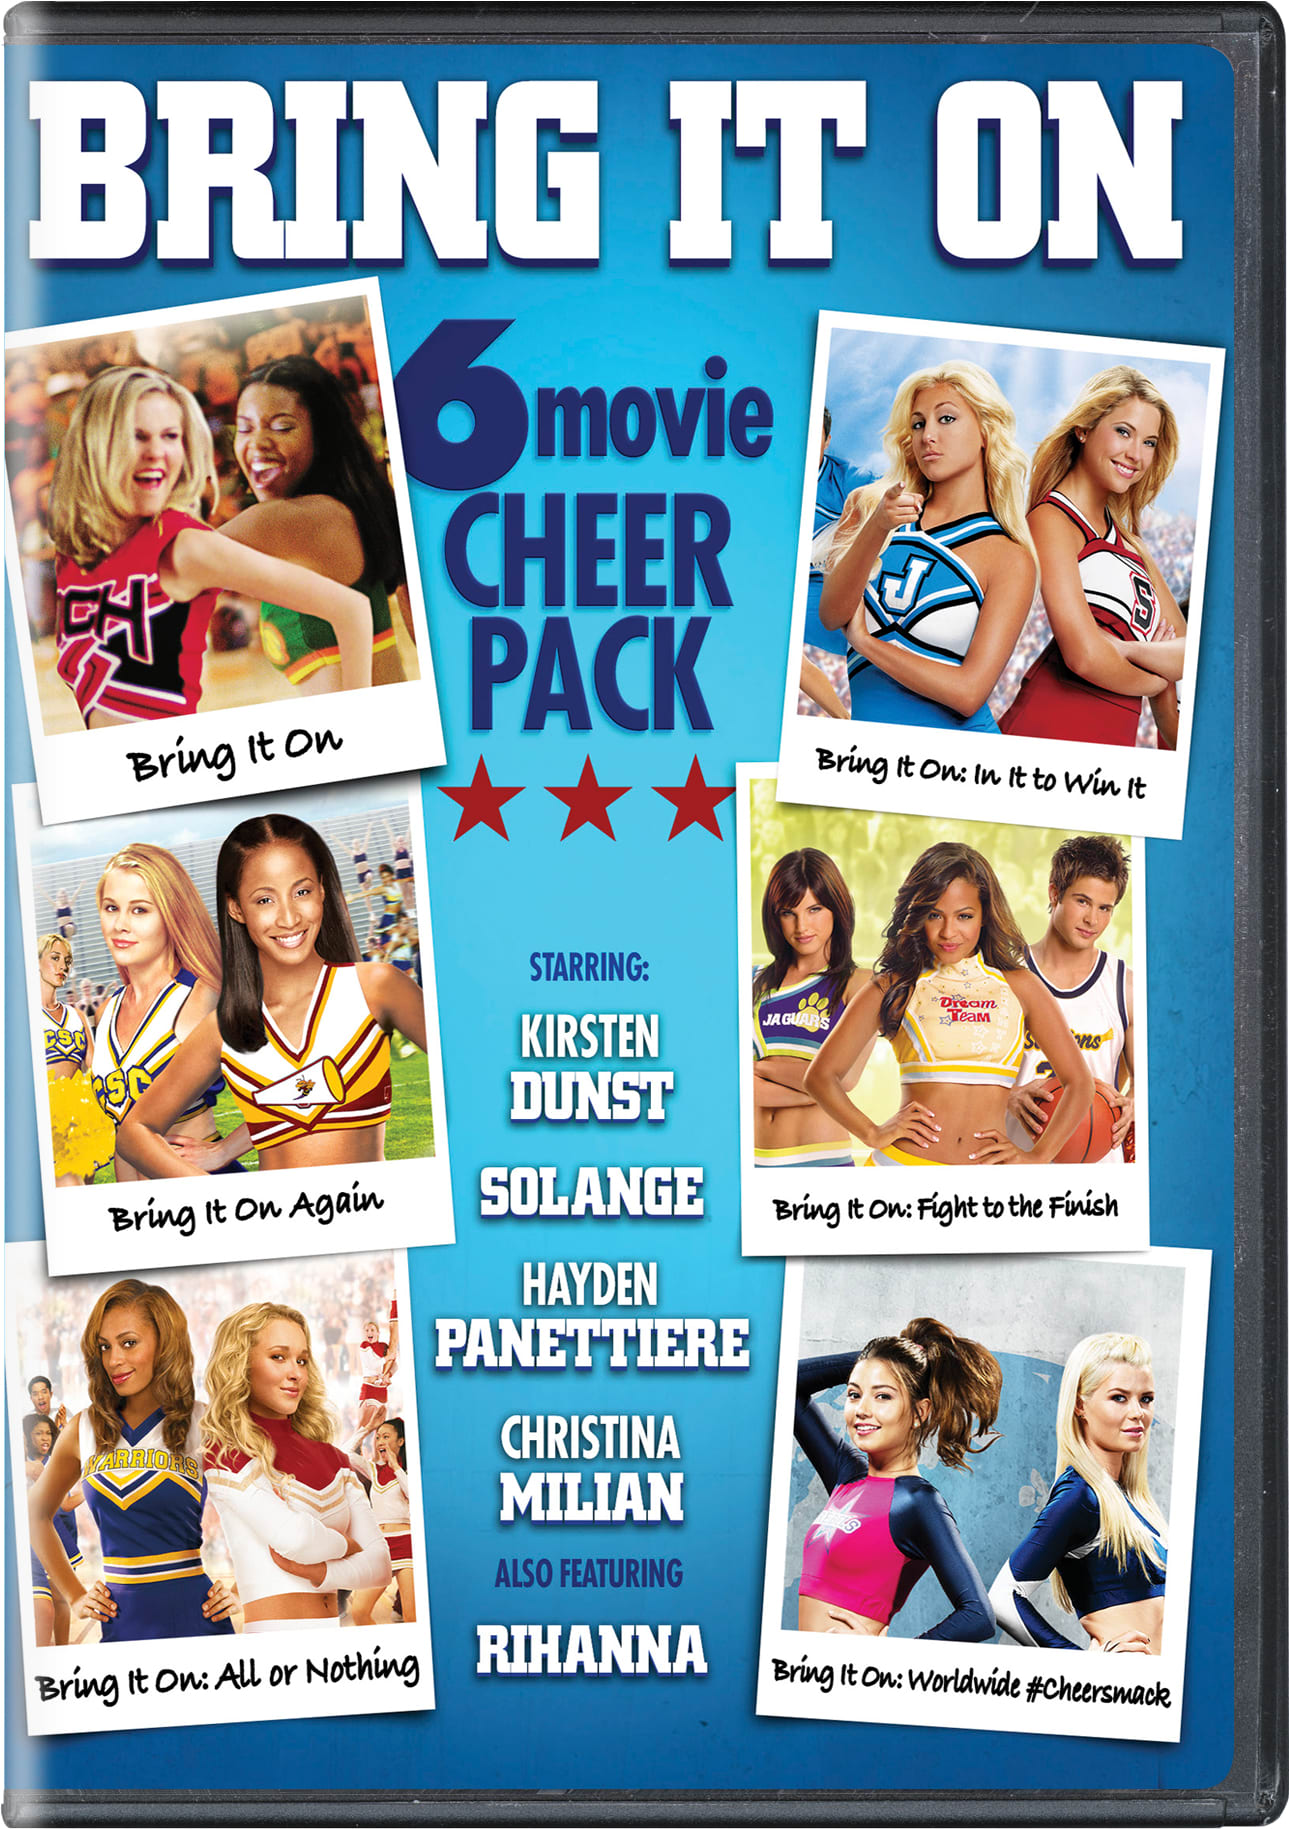 Bring It On: 6-movie Cheer Pack (Box Set) [DVD]